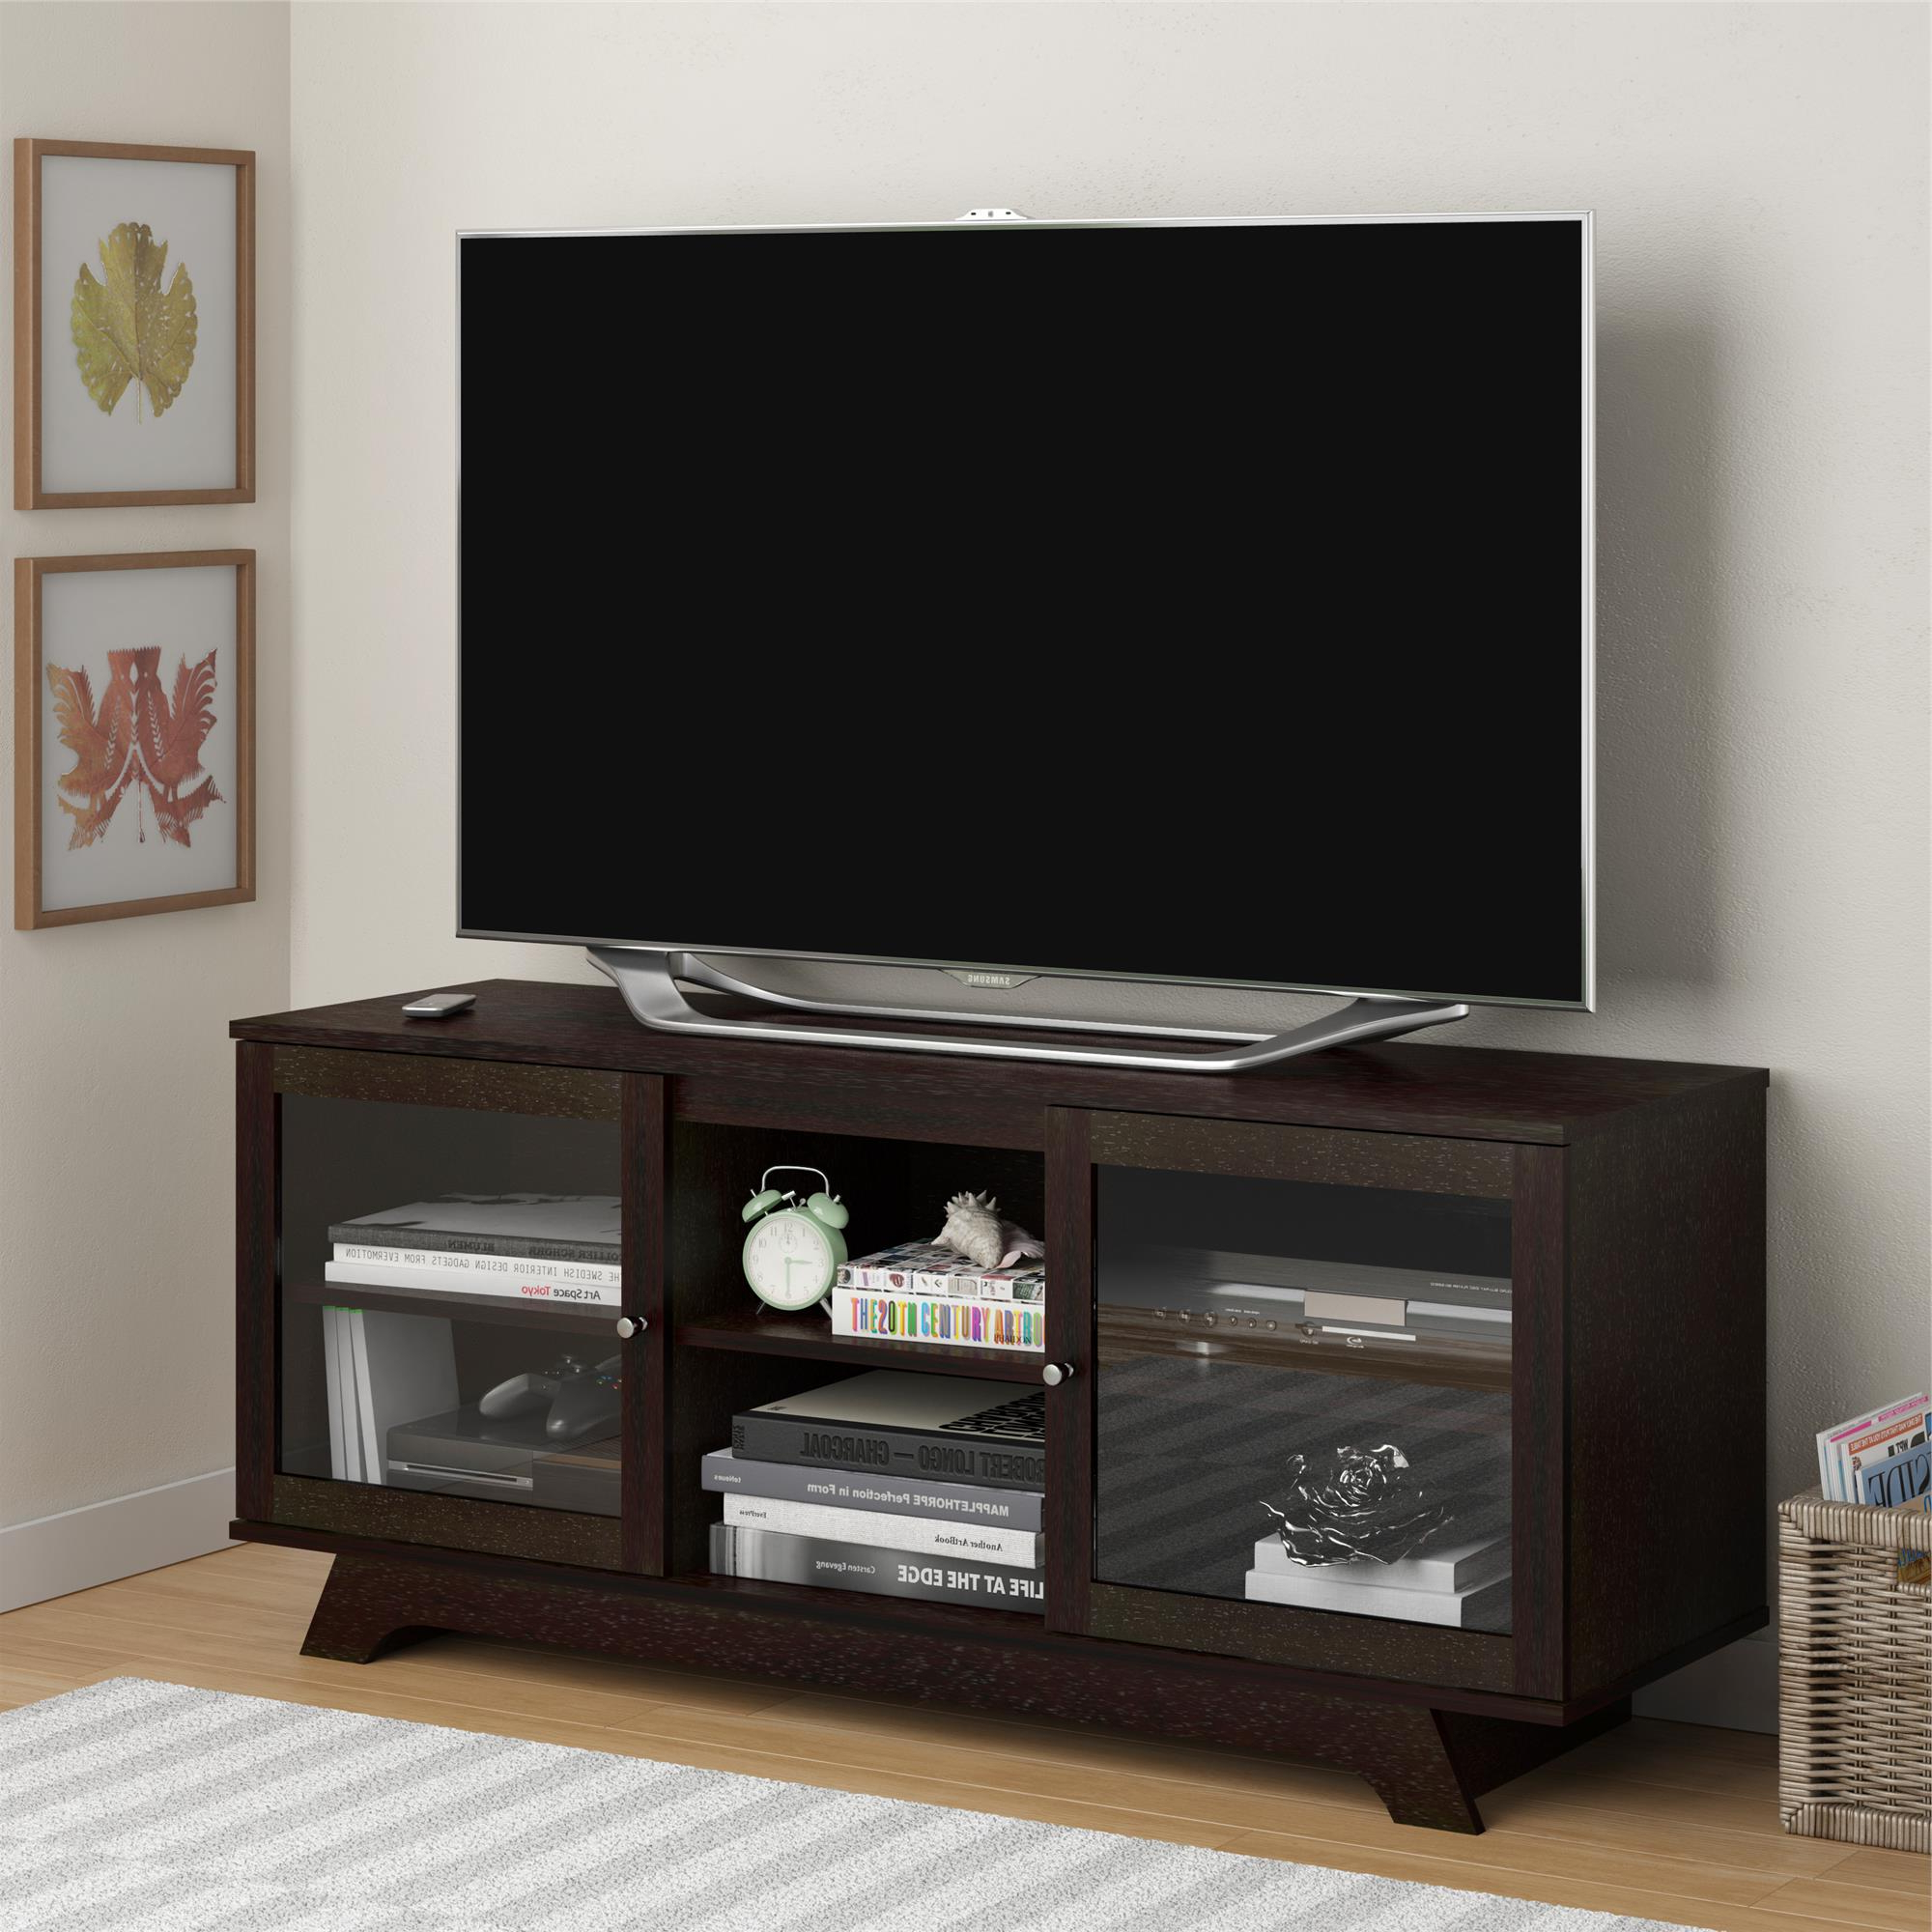 "Englewood Tv Stand For Tvs Up To 55"", Espresso Pertaining To Most Up To Date Tv Stands For 55 Inch Tv (View 20 of 20)"